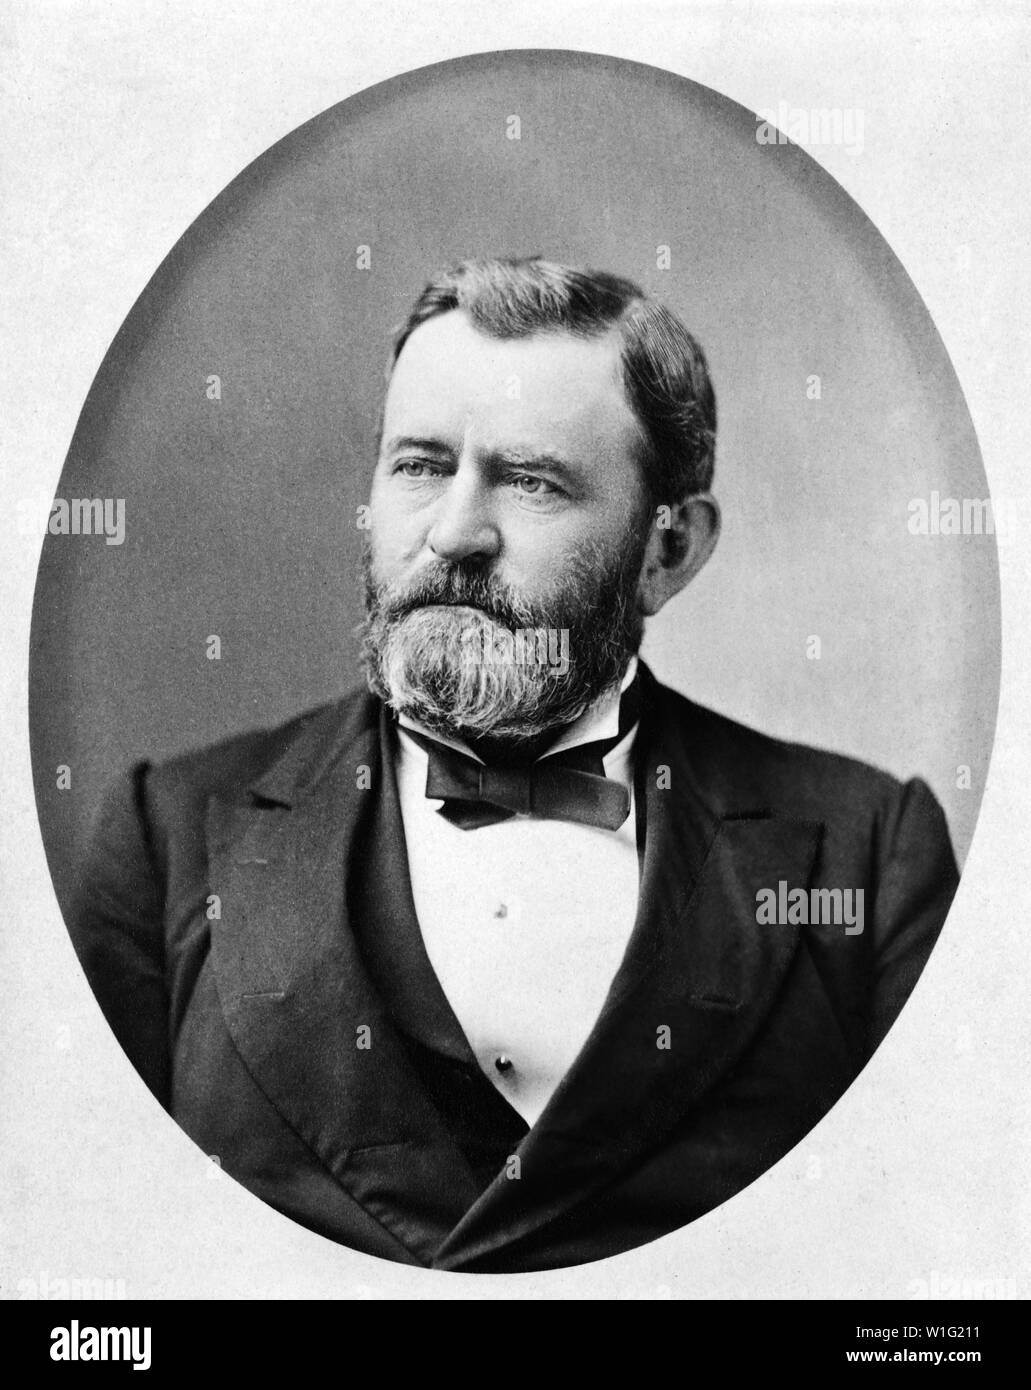 Ulysses S. Grant (1822-85), 18th President of the United States 1869-77,  General of Union Army during American Civil War, Head and Shoulders Portrait, Photograph by Theodore Lilienthal, 1880 - Stock Image